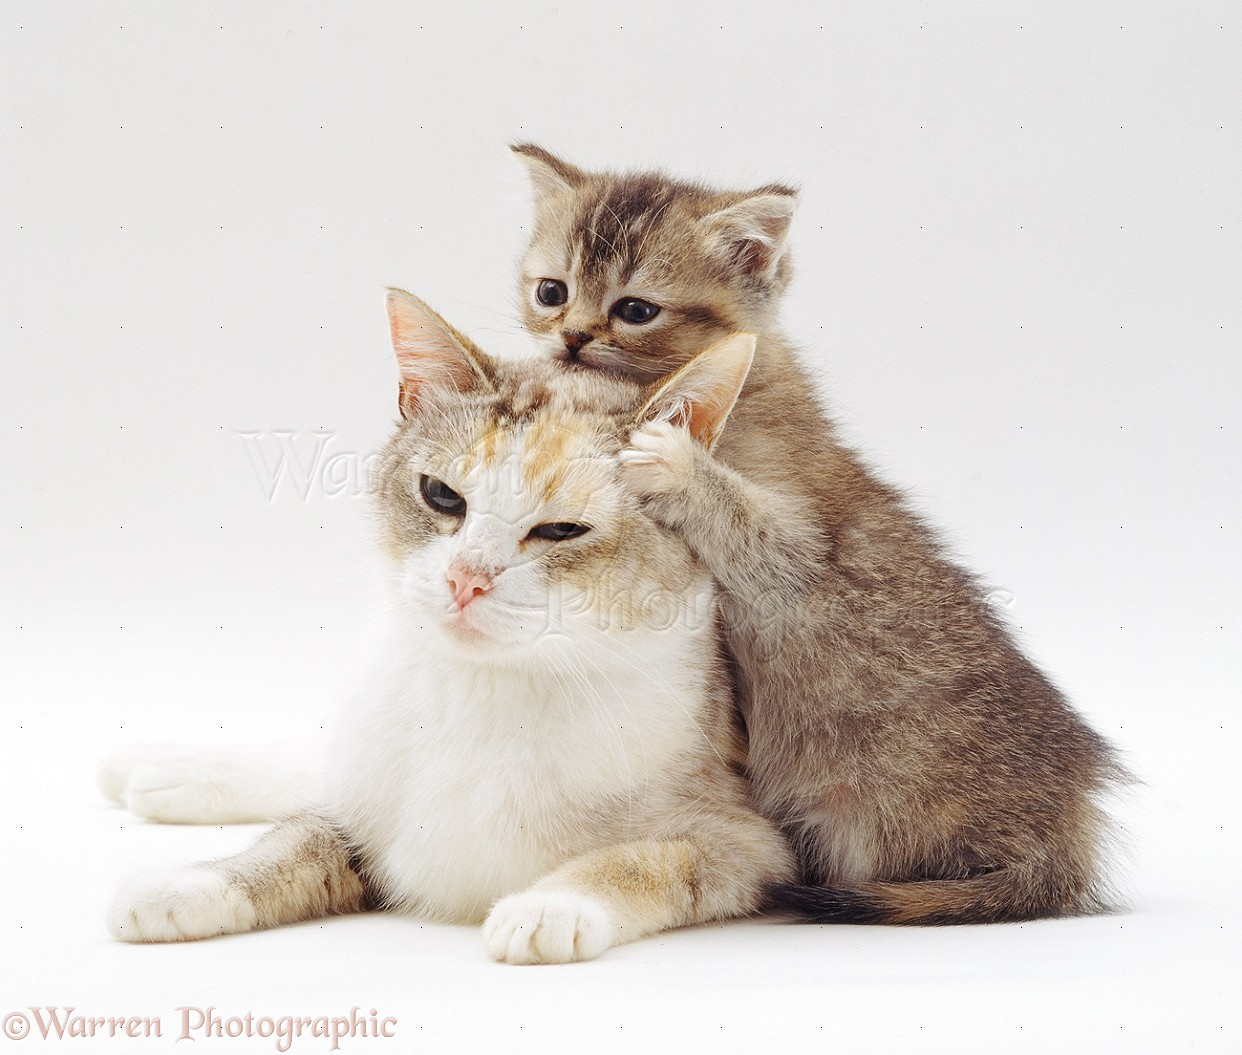 Cute cat and kitten photo WP